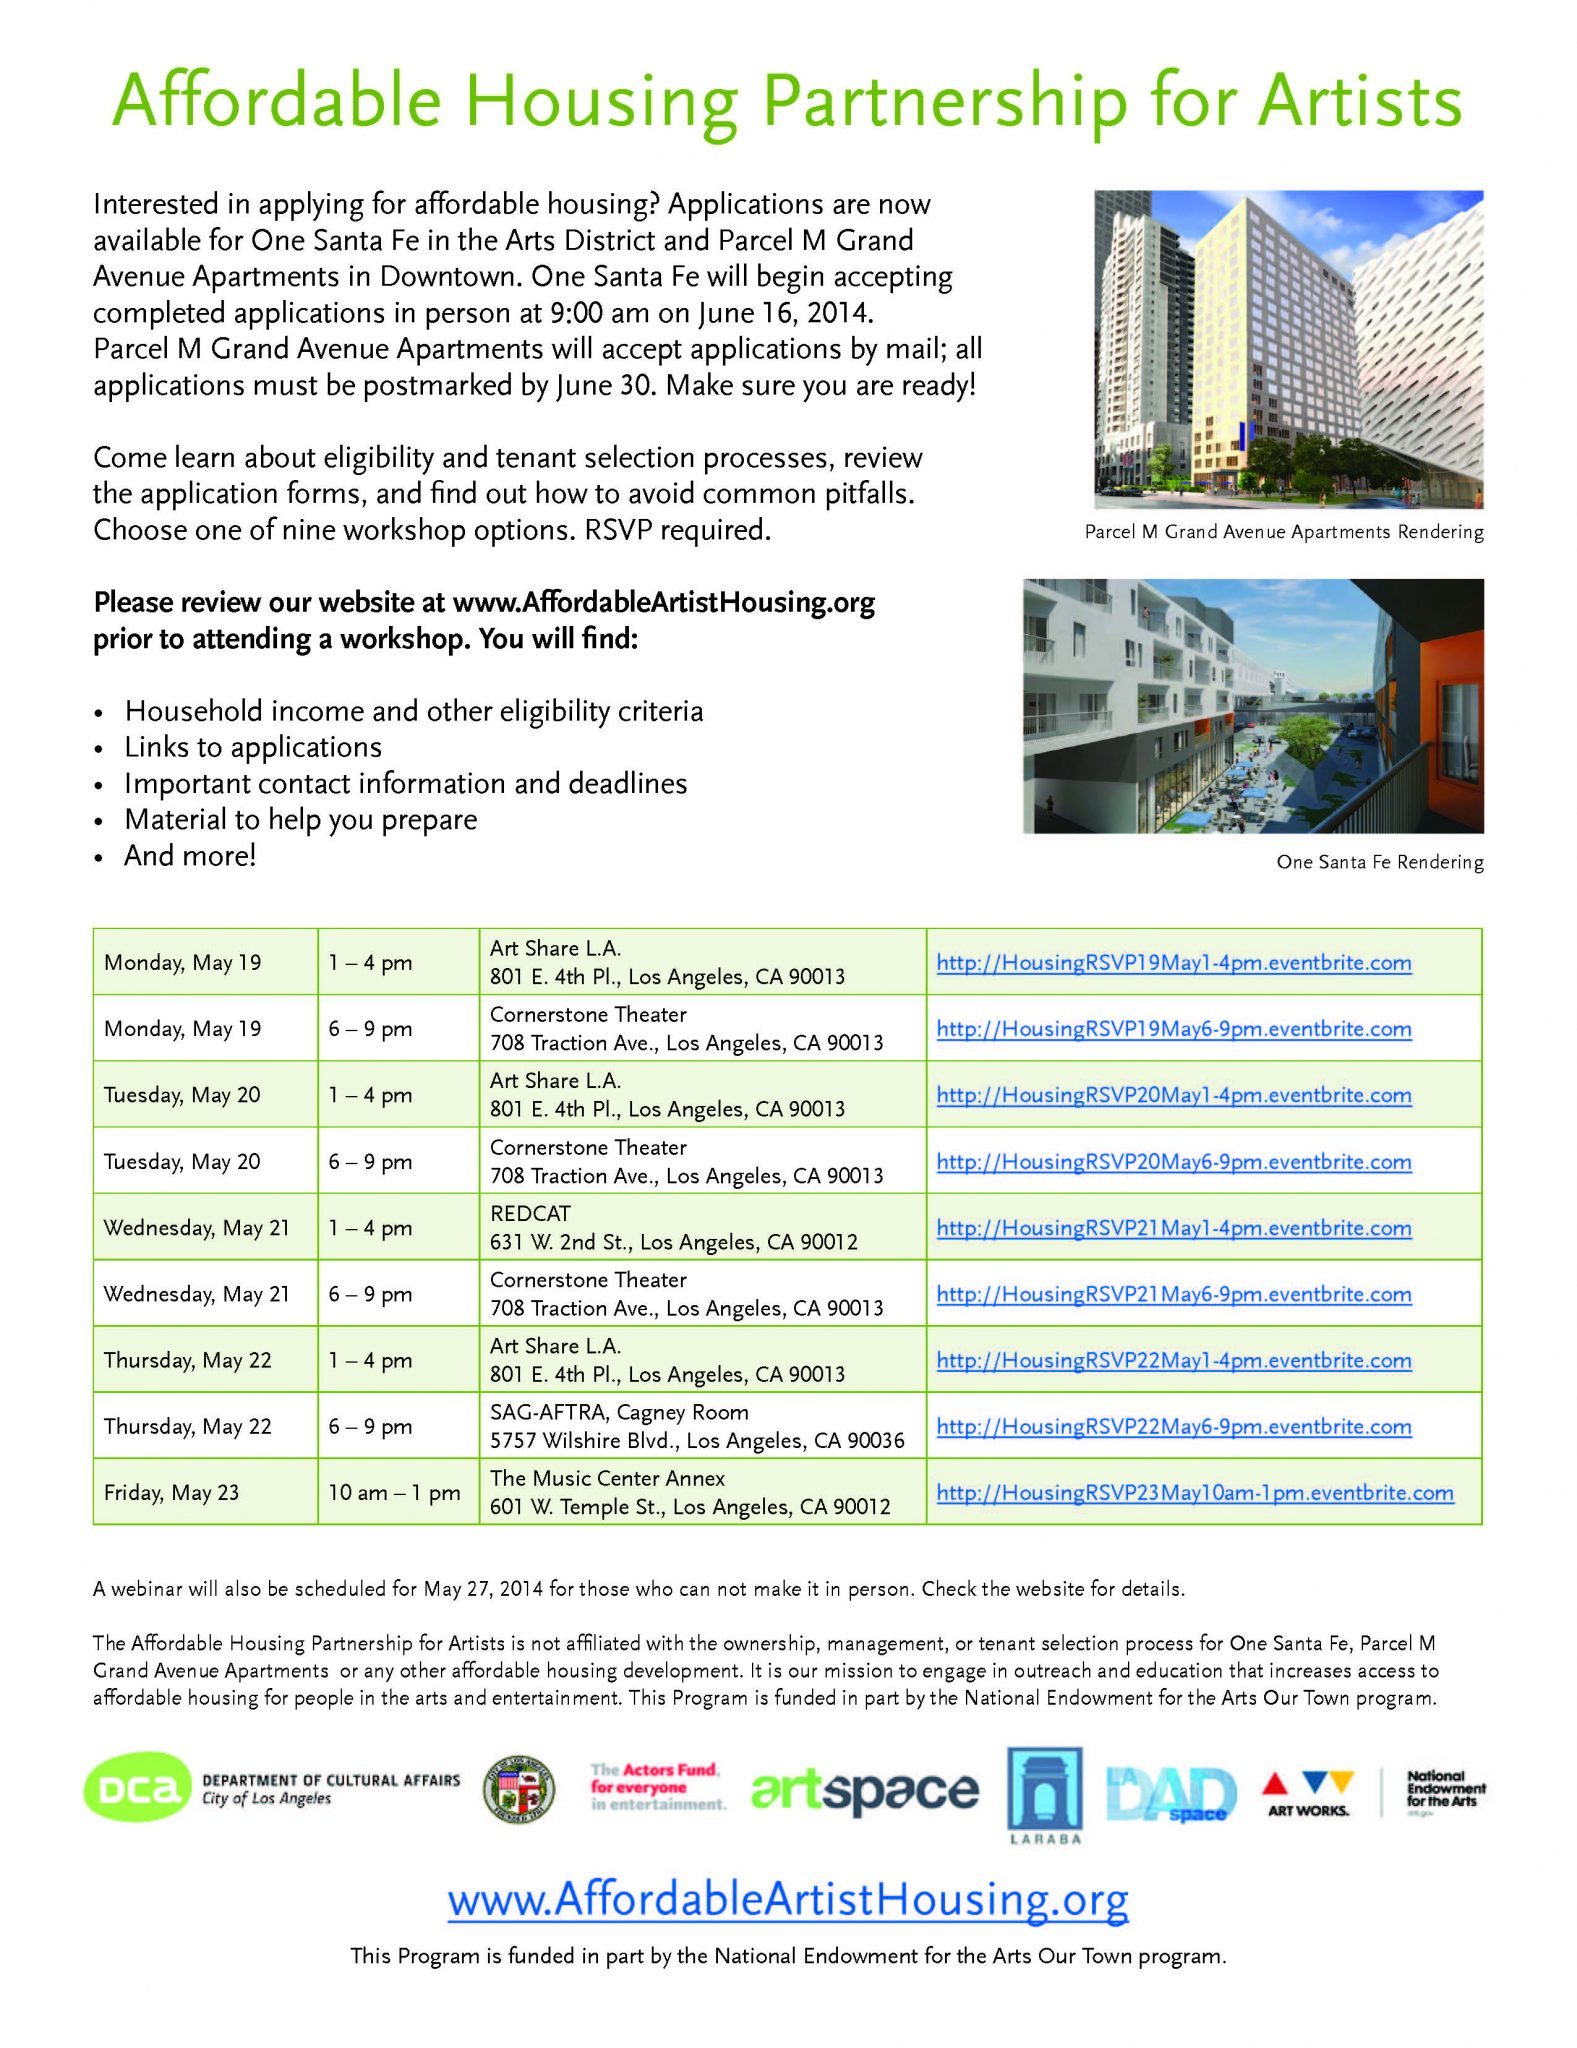 UPDATED: More Affordable Housing Workshops - May 16, 2014